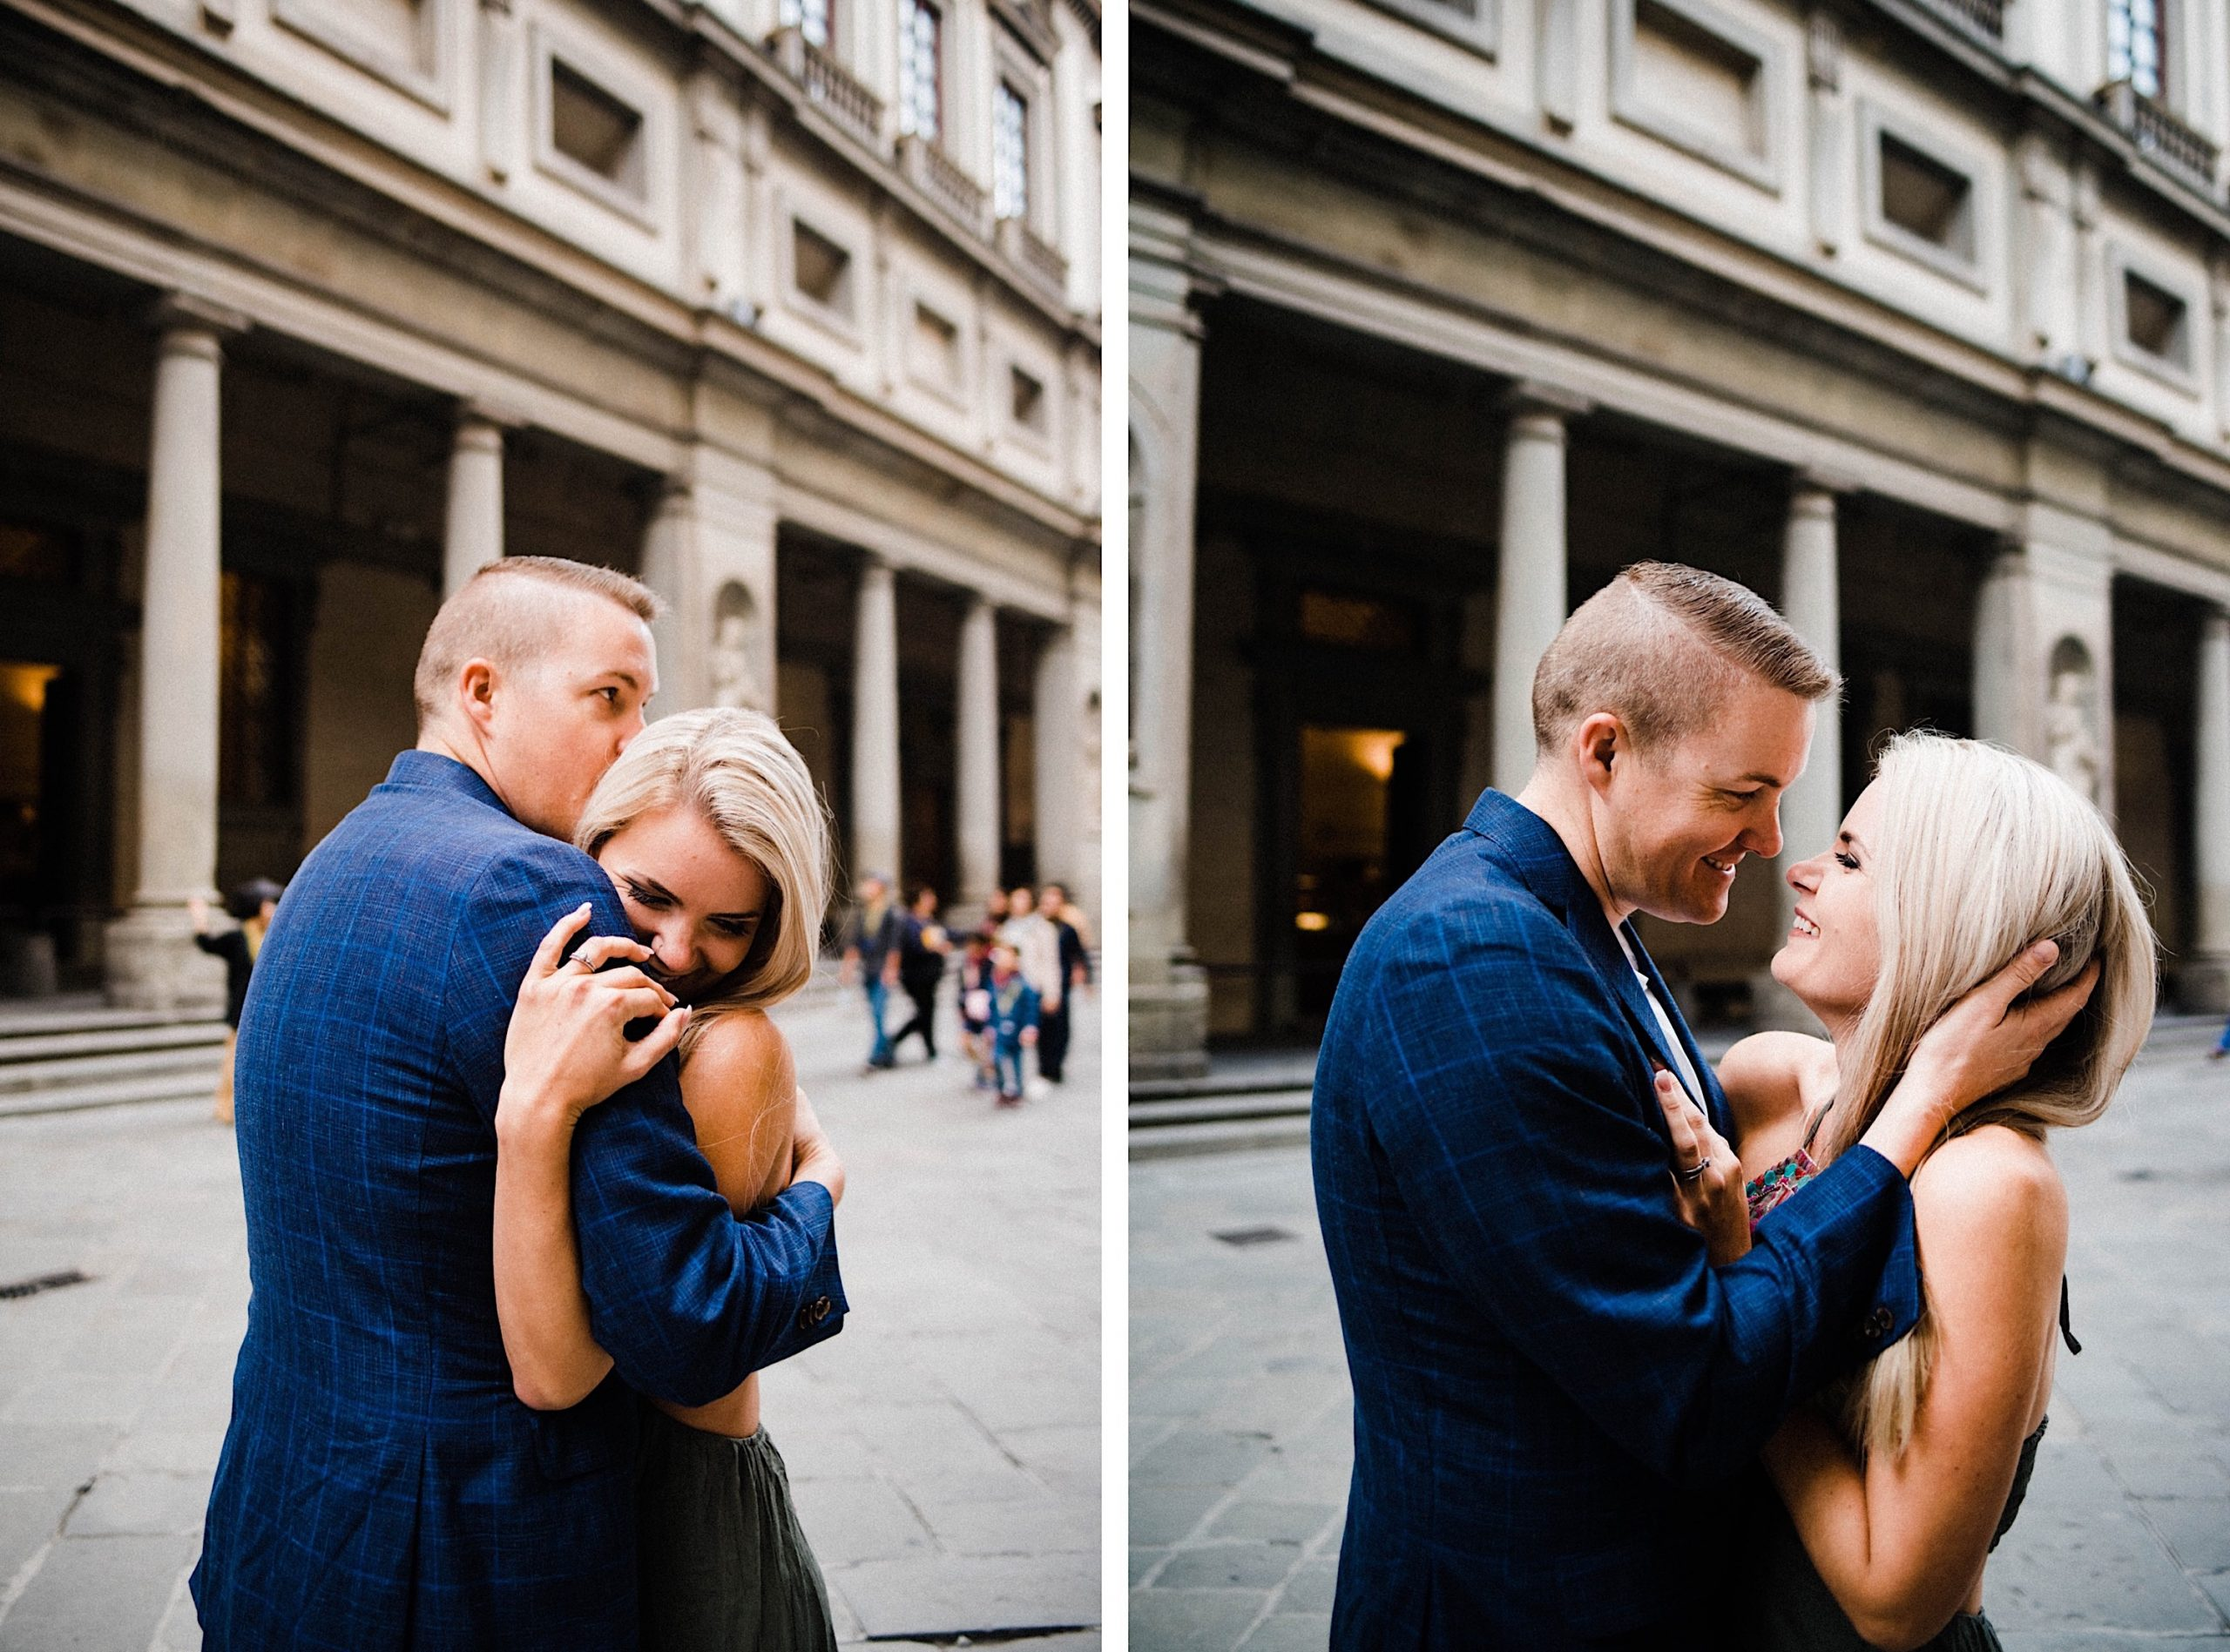 Side by side portrait photos of a couple embracing in front of the entrance of the Galleria degli Uffizi in Florence.